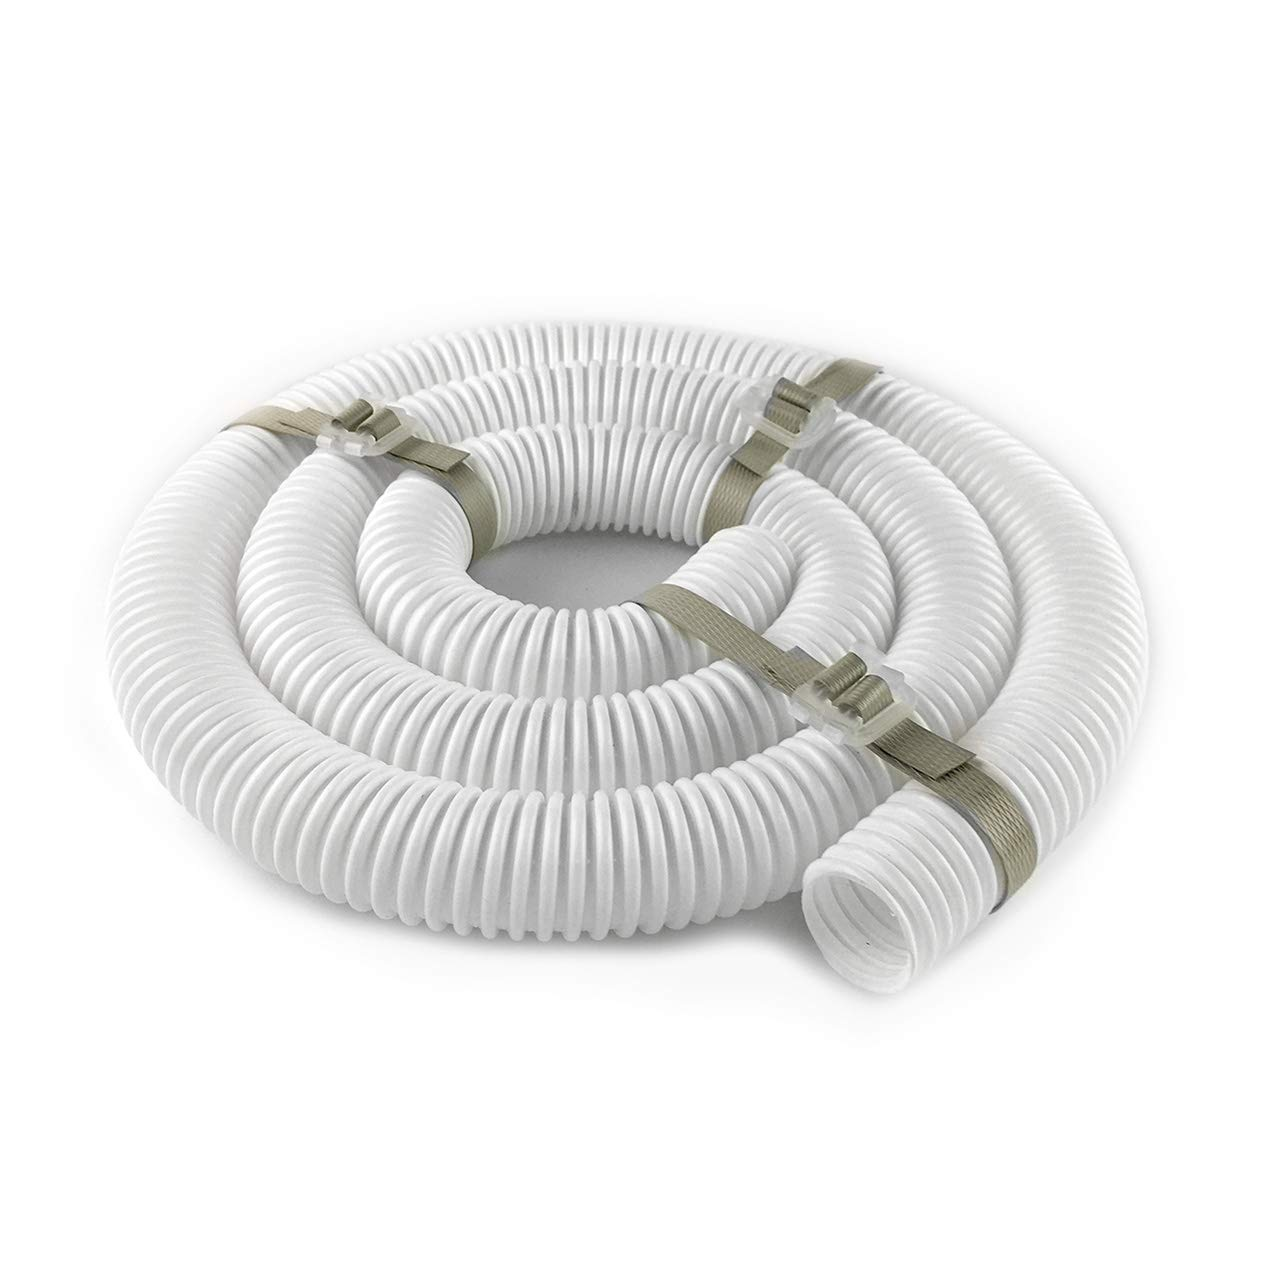 Ximoon Pool Cleaner 6-Ft Cuffless Feed Hose Replacement for Polaris 360 Cleaner 9-100-3102 by Ximoon